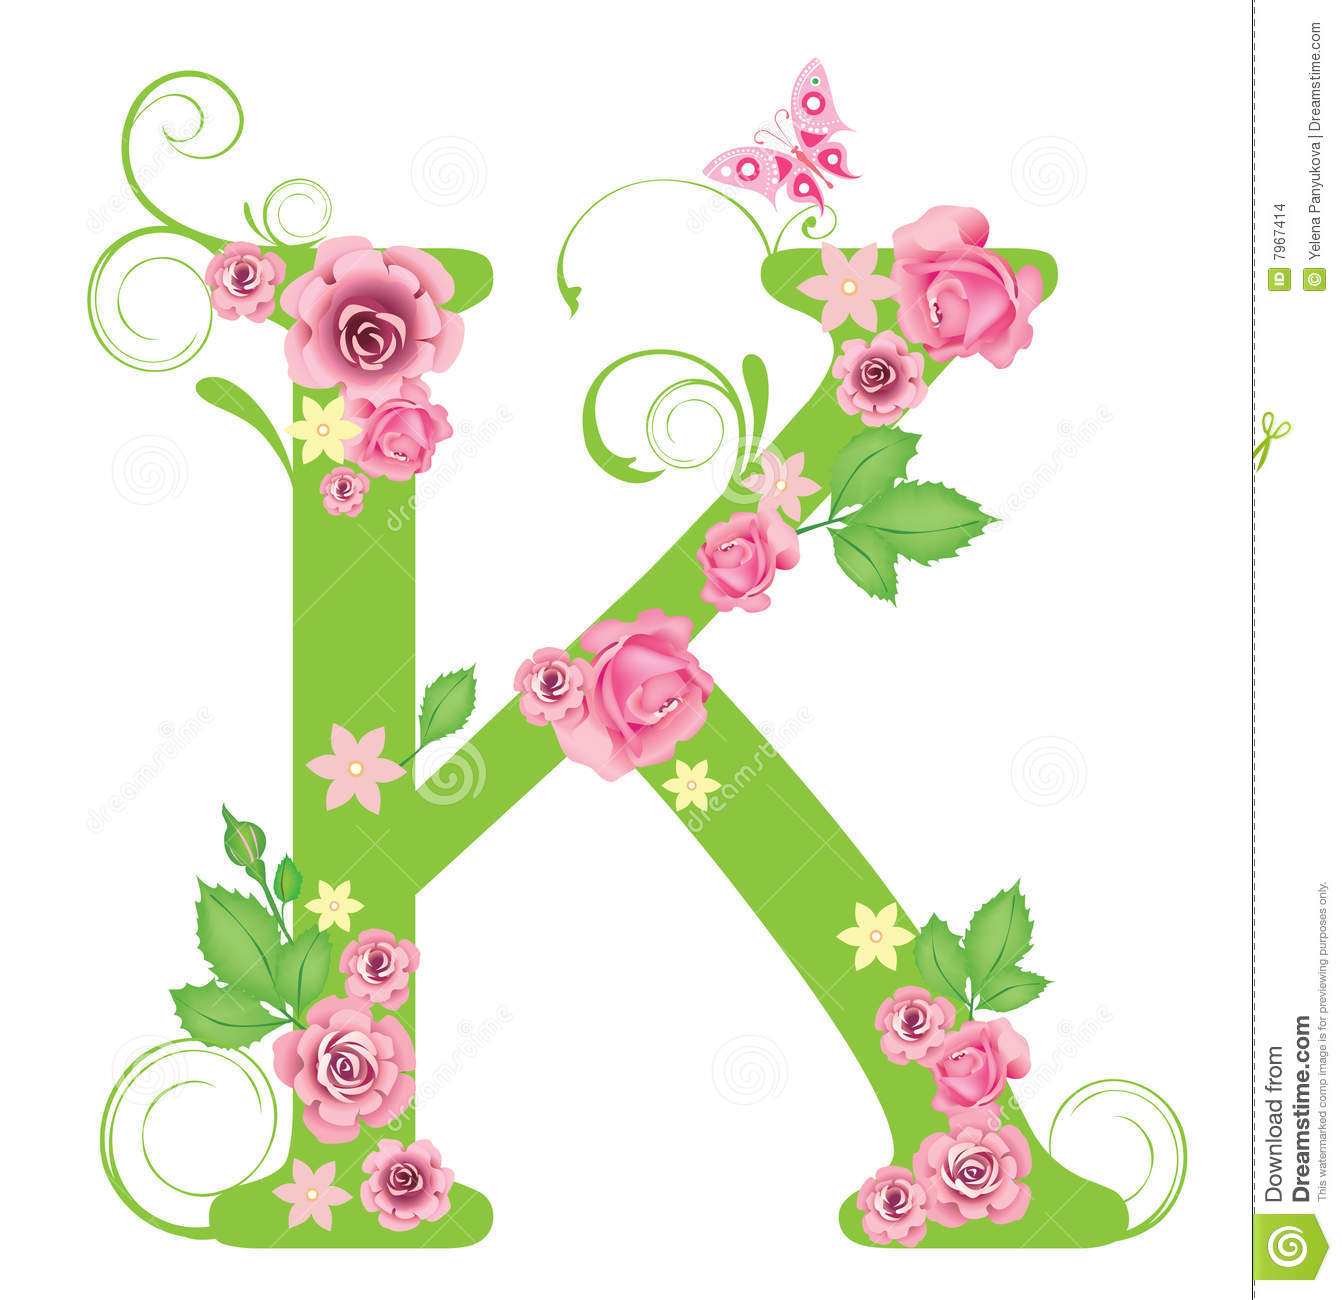 K Letter In Rose Letter K with roses